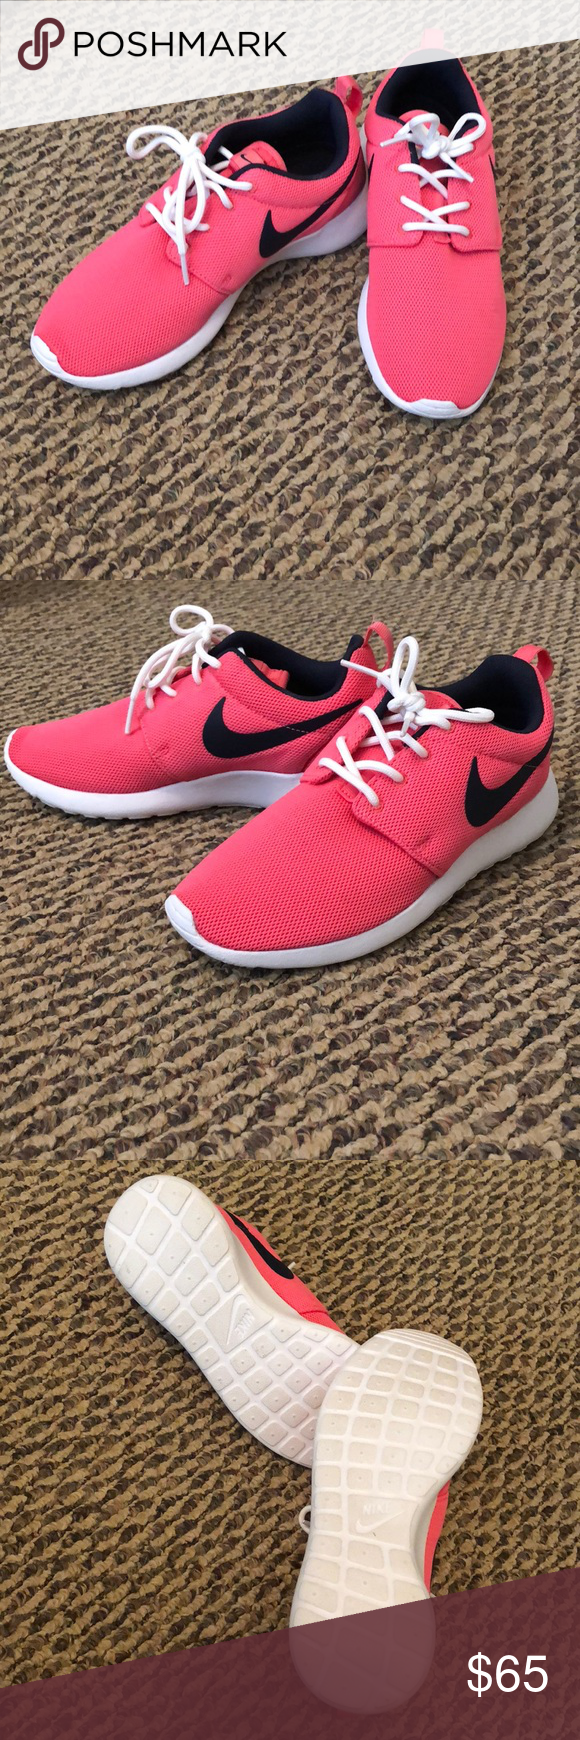 970321c228d0 Pink and Navy Blue Nike Roshe Run Sneakers Size 6 Nike Roshe Run Sneakers